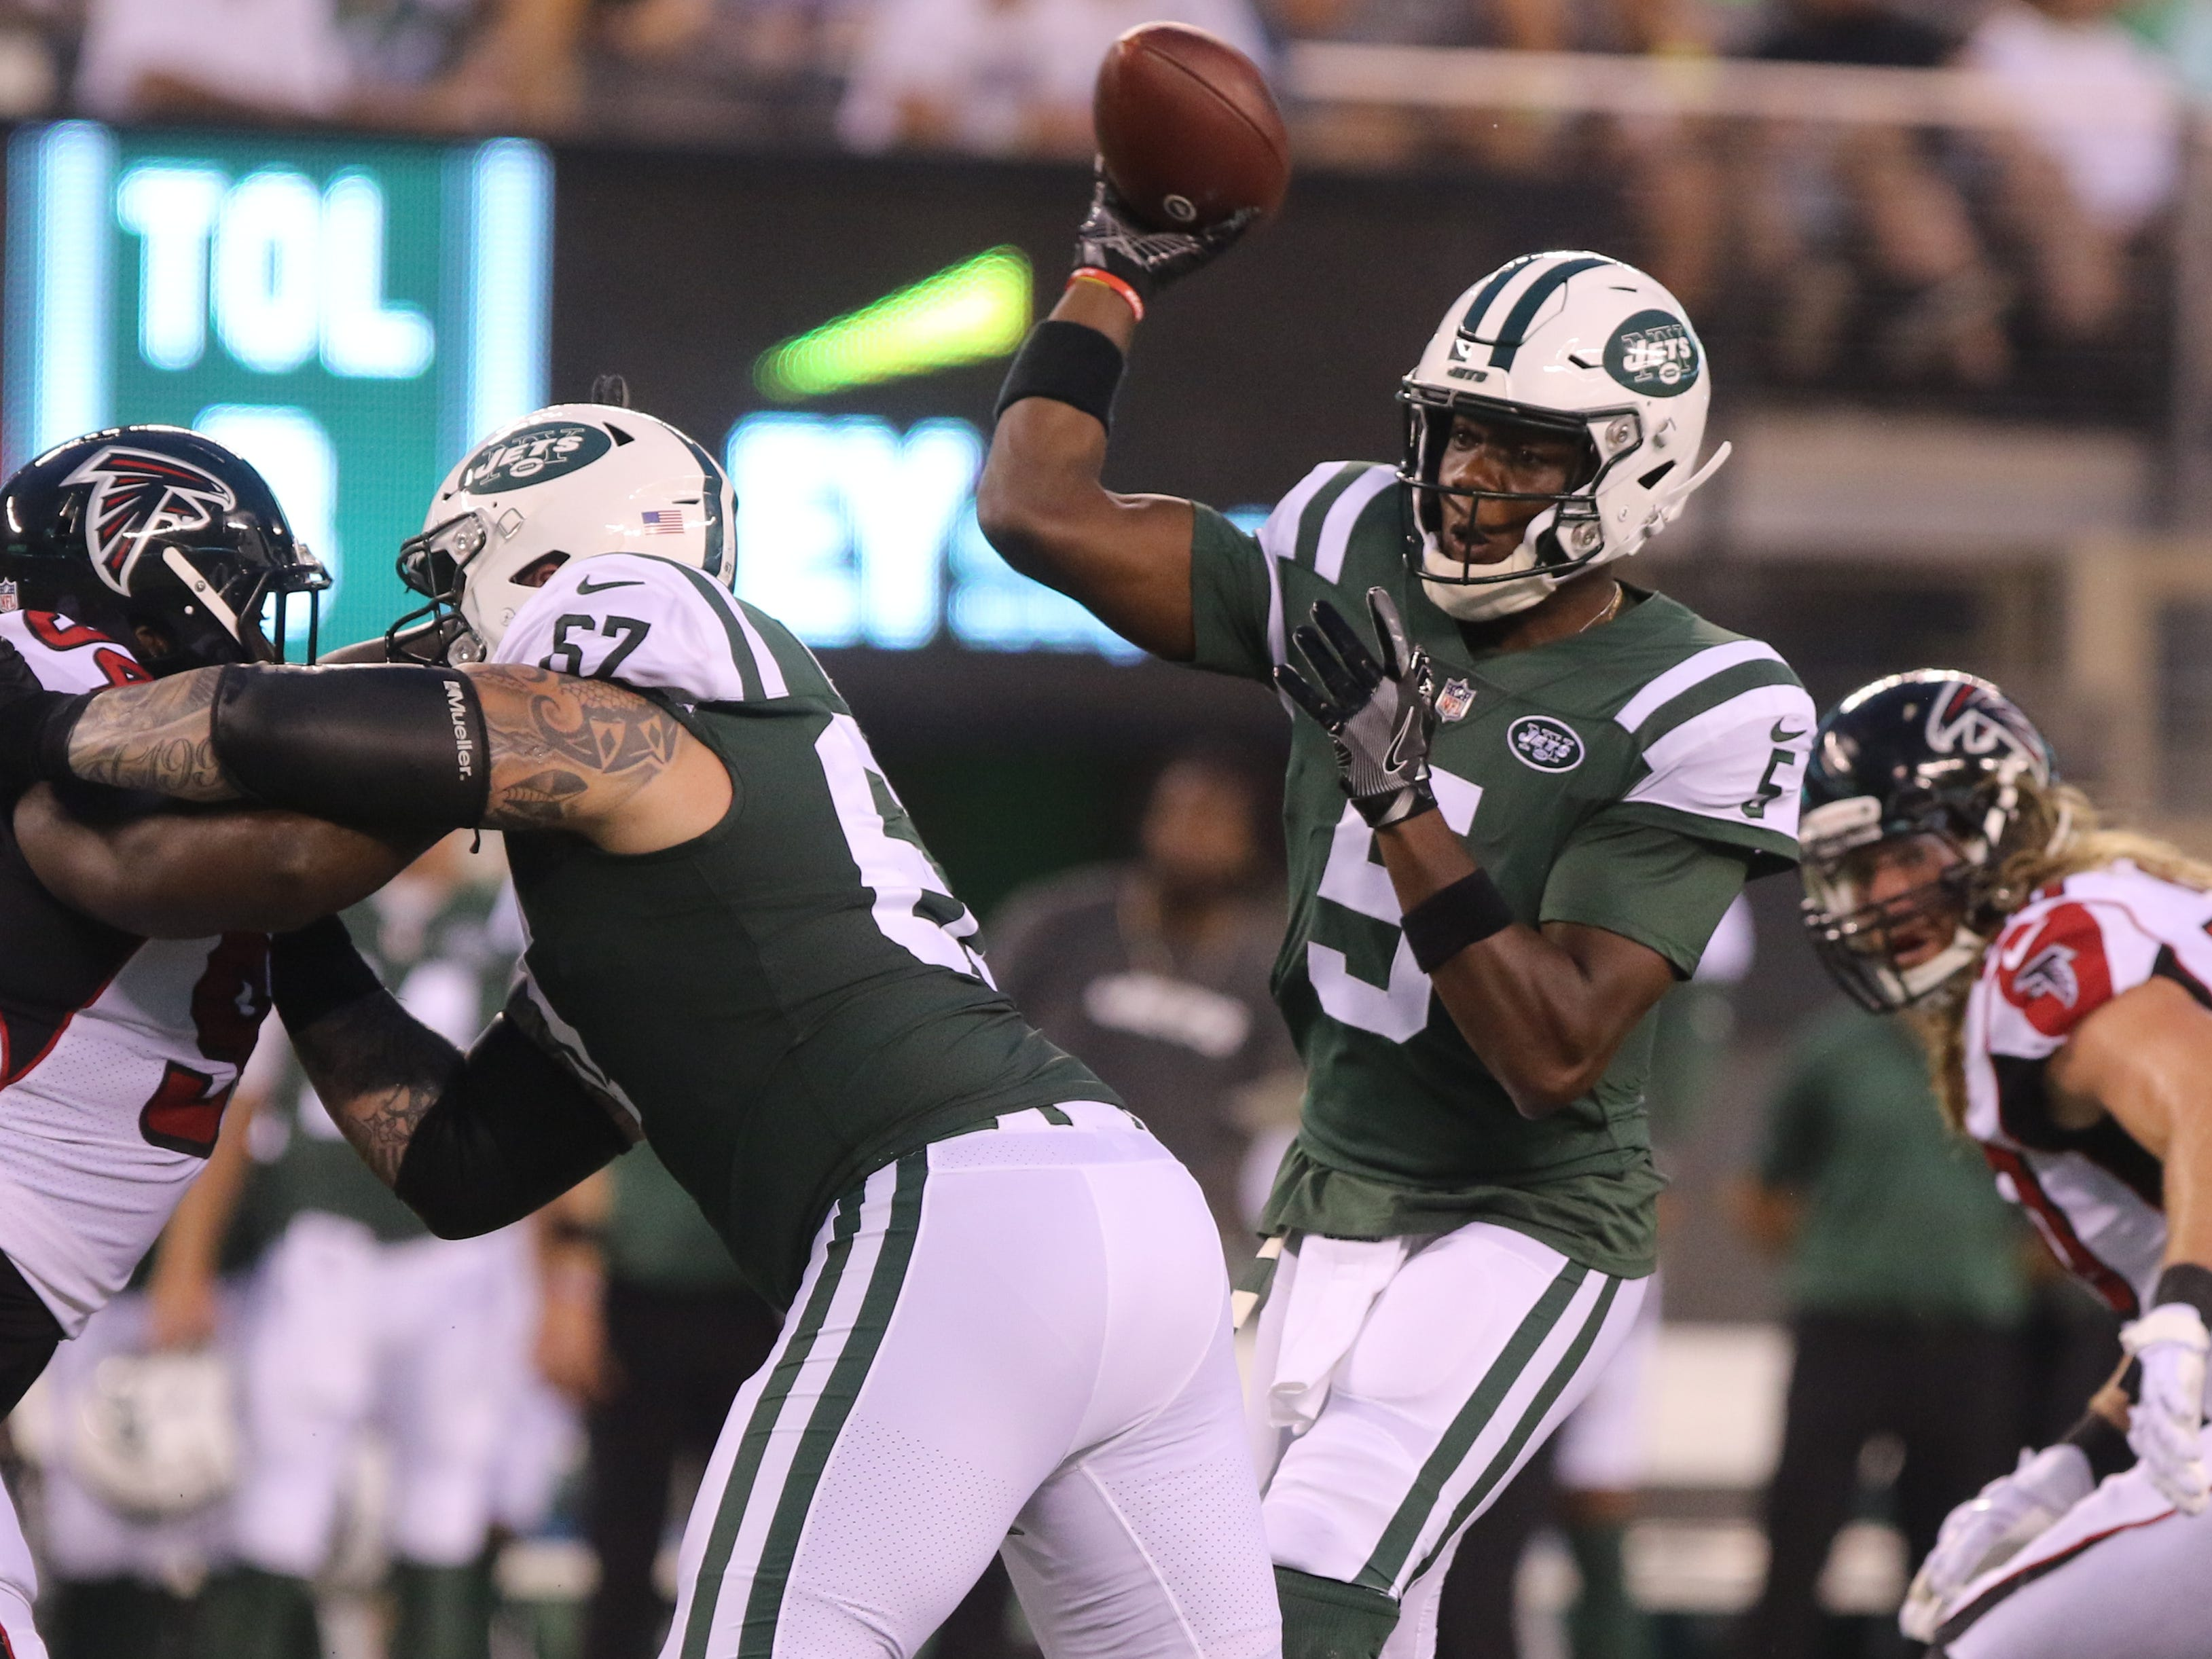 Jets quarterback Teddy Bridgewater led his team down the field for a first half touchdown in a preseason game against the Atlanta Falcons at MetLife Stadium on Friday, Aug. 10, 2018 in East Rutherford.